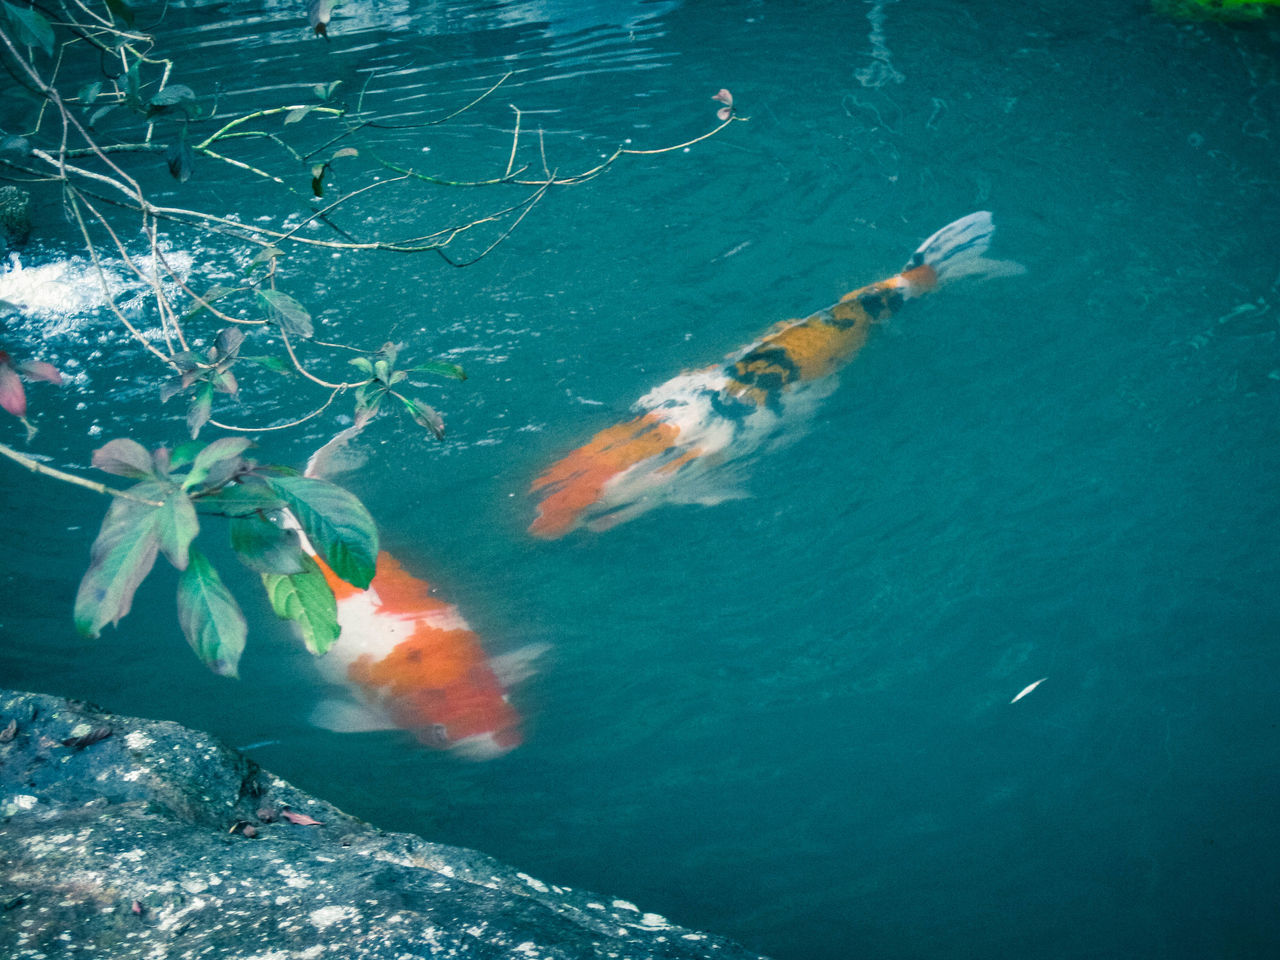 Animal Themes Animals In The Wild Beautiful Blue Blue Sea Charm Comfortable Day Fish High Angle View Leaf Meeting Nature No People Orange Outdoors Play Scenery Selective Focus Shine Stone Swimming Travel Warm Water